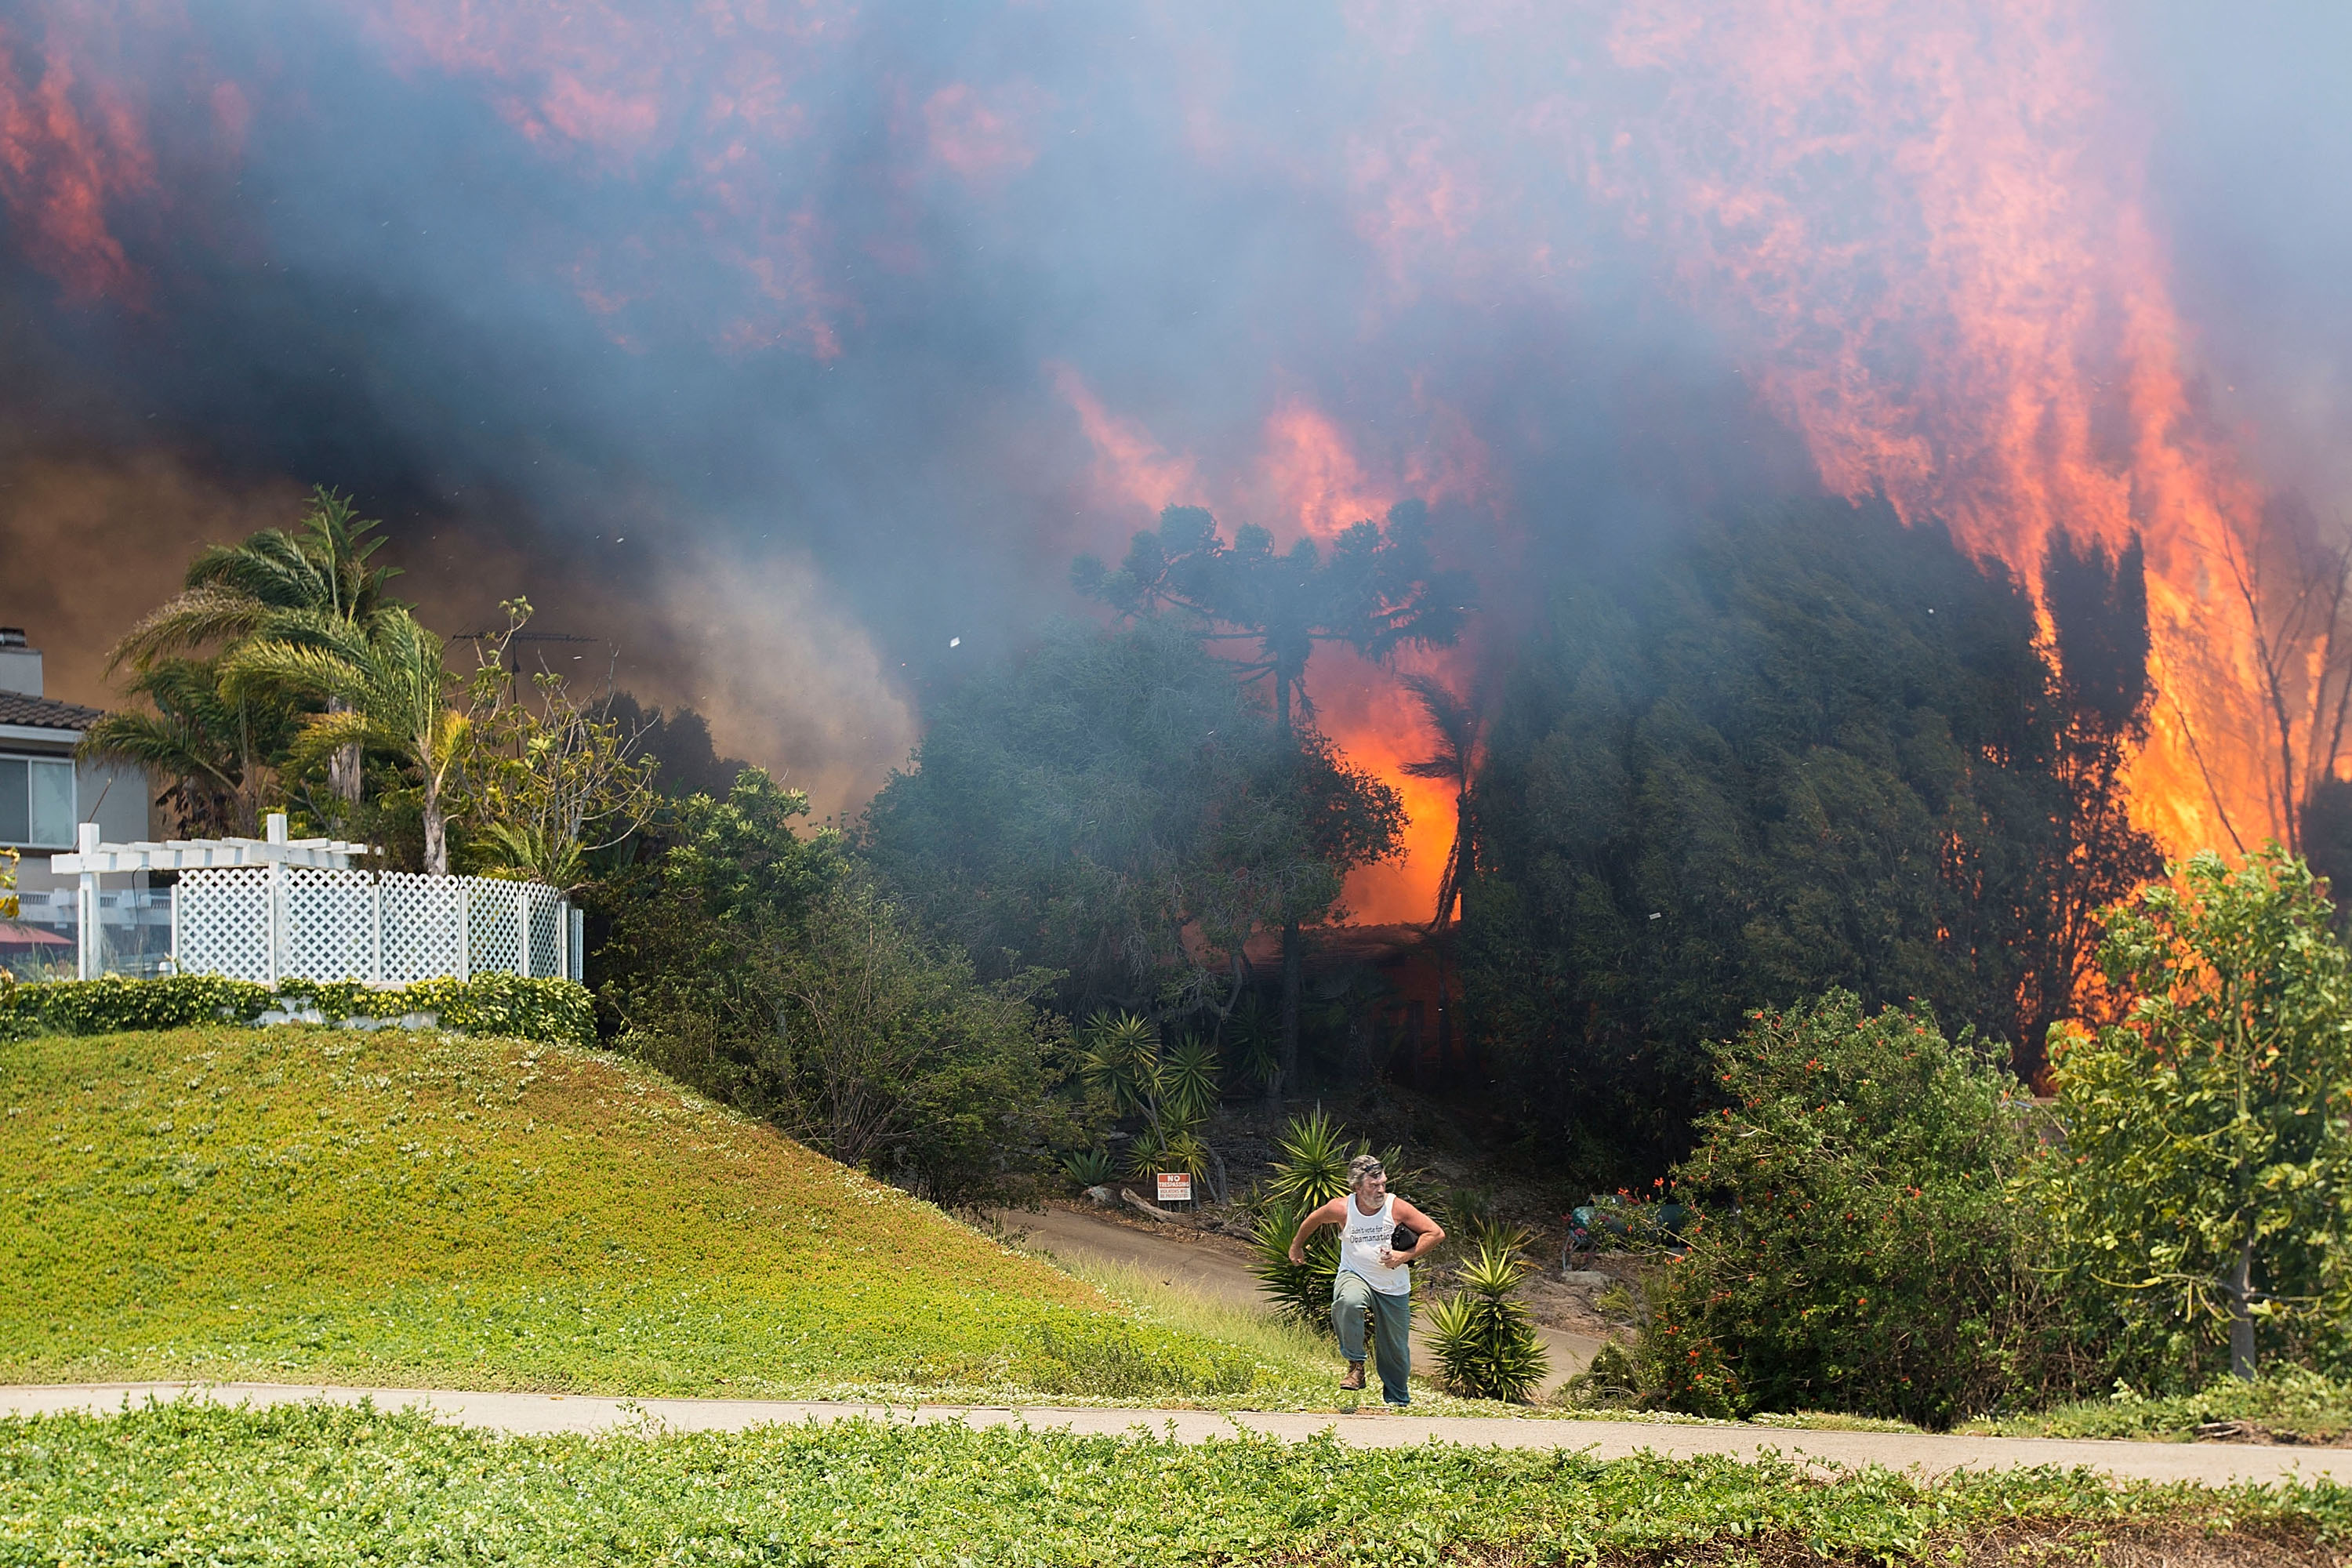 CARLSBAD, CA - MAY 14: A man flees erupting flames as a house on Skimmer Court is engulfed by the Poinsettia Fire on May 14, 2014 in Carlsbad, California. Thirty homes have burned in the fast-moving Carlsbad blaze, fueled by record heat, high winds and dry conditions. At least four other fires advanced in nearby communities. (Photo by Daniel Knighton/Getty Images)